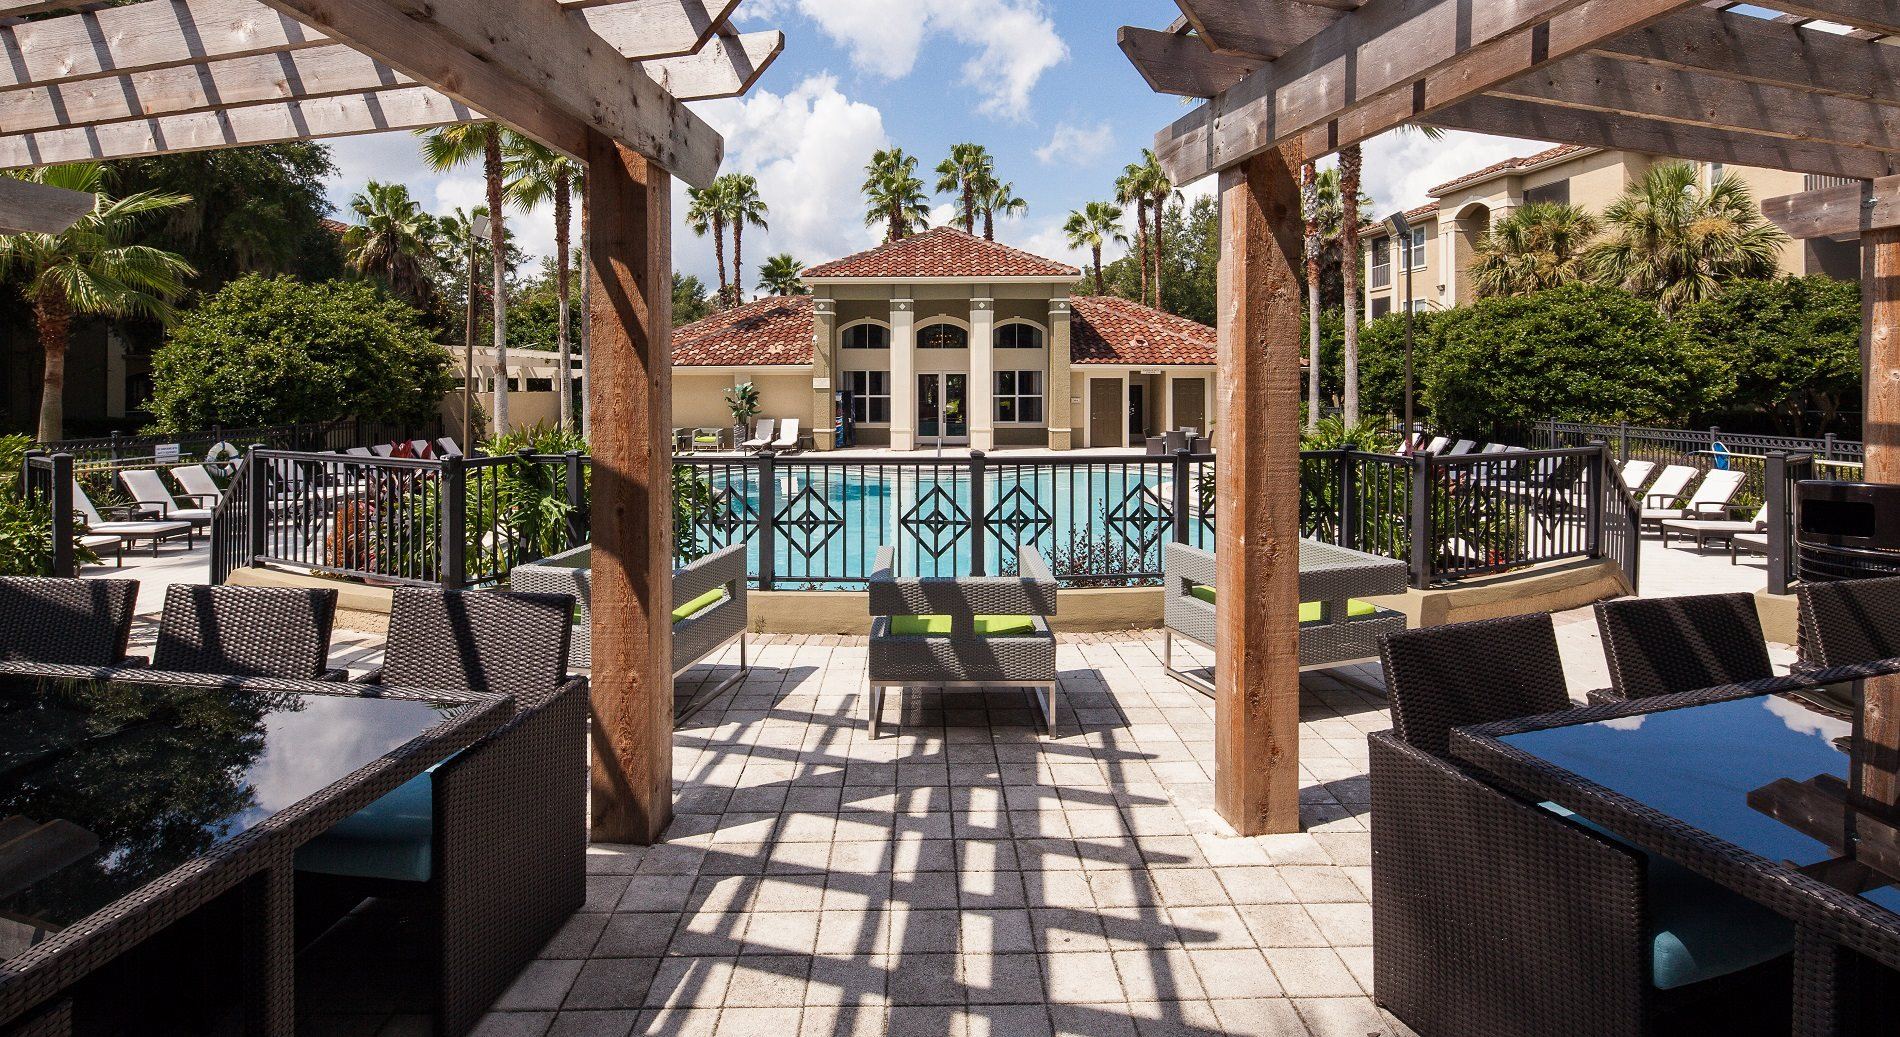 Grand resort-style swimming pool with large aqua deck and outdoor seating at Legacy at Fort Clarke, Gainseville, FL, 32606